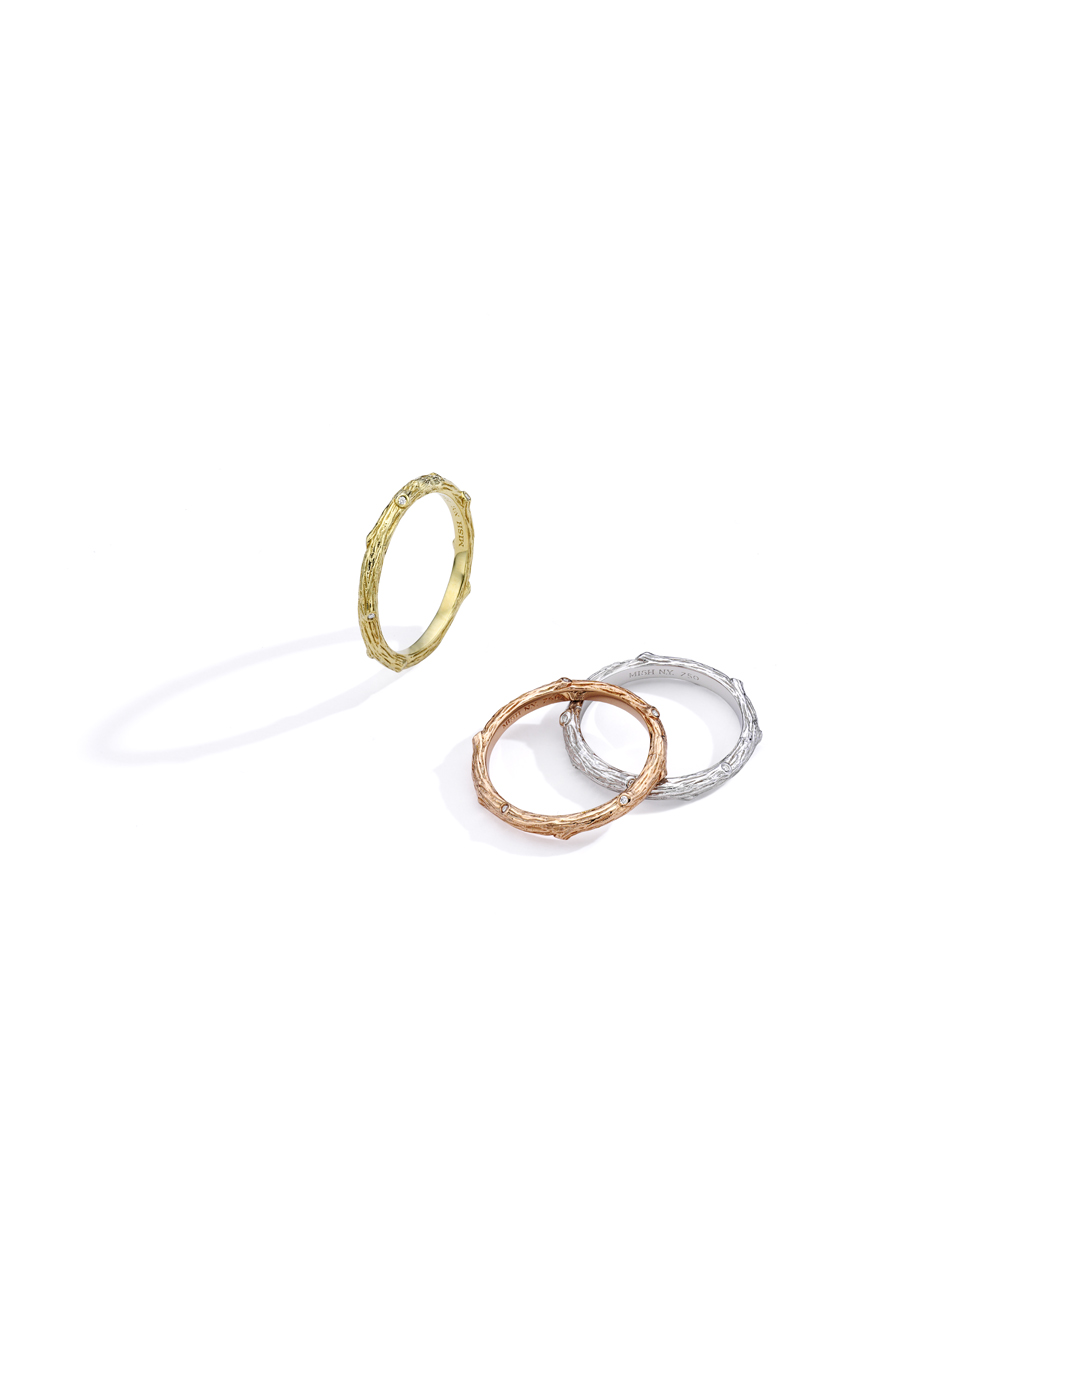 mish_products_rings_twig_wood_nymph_Trio Narrow Rings